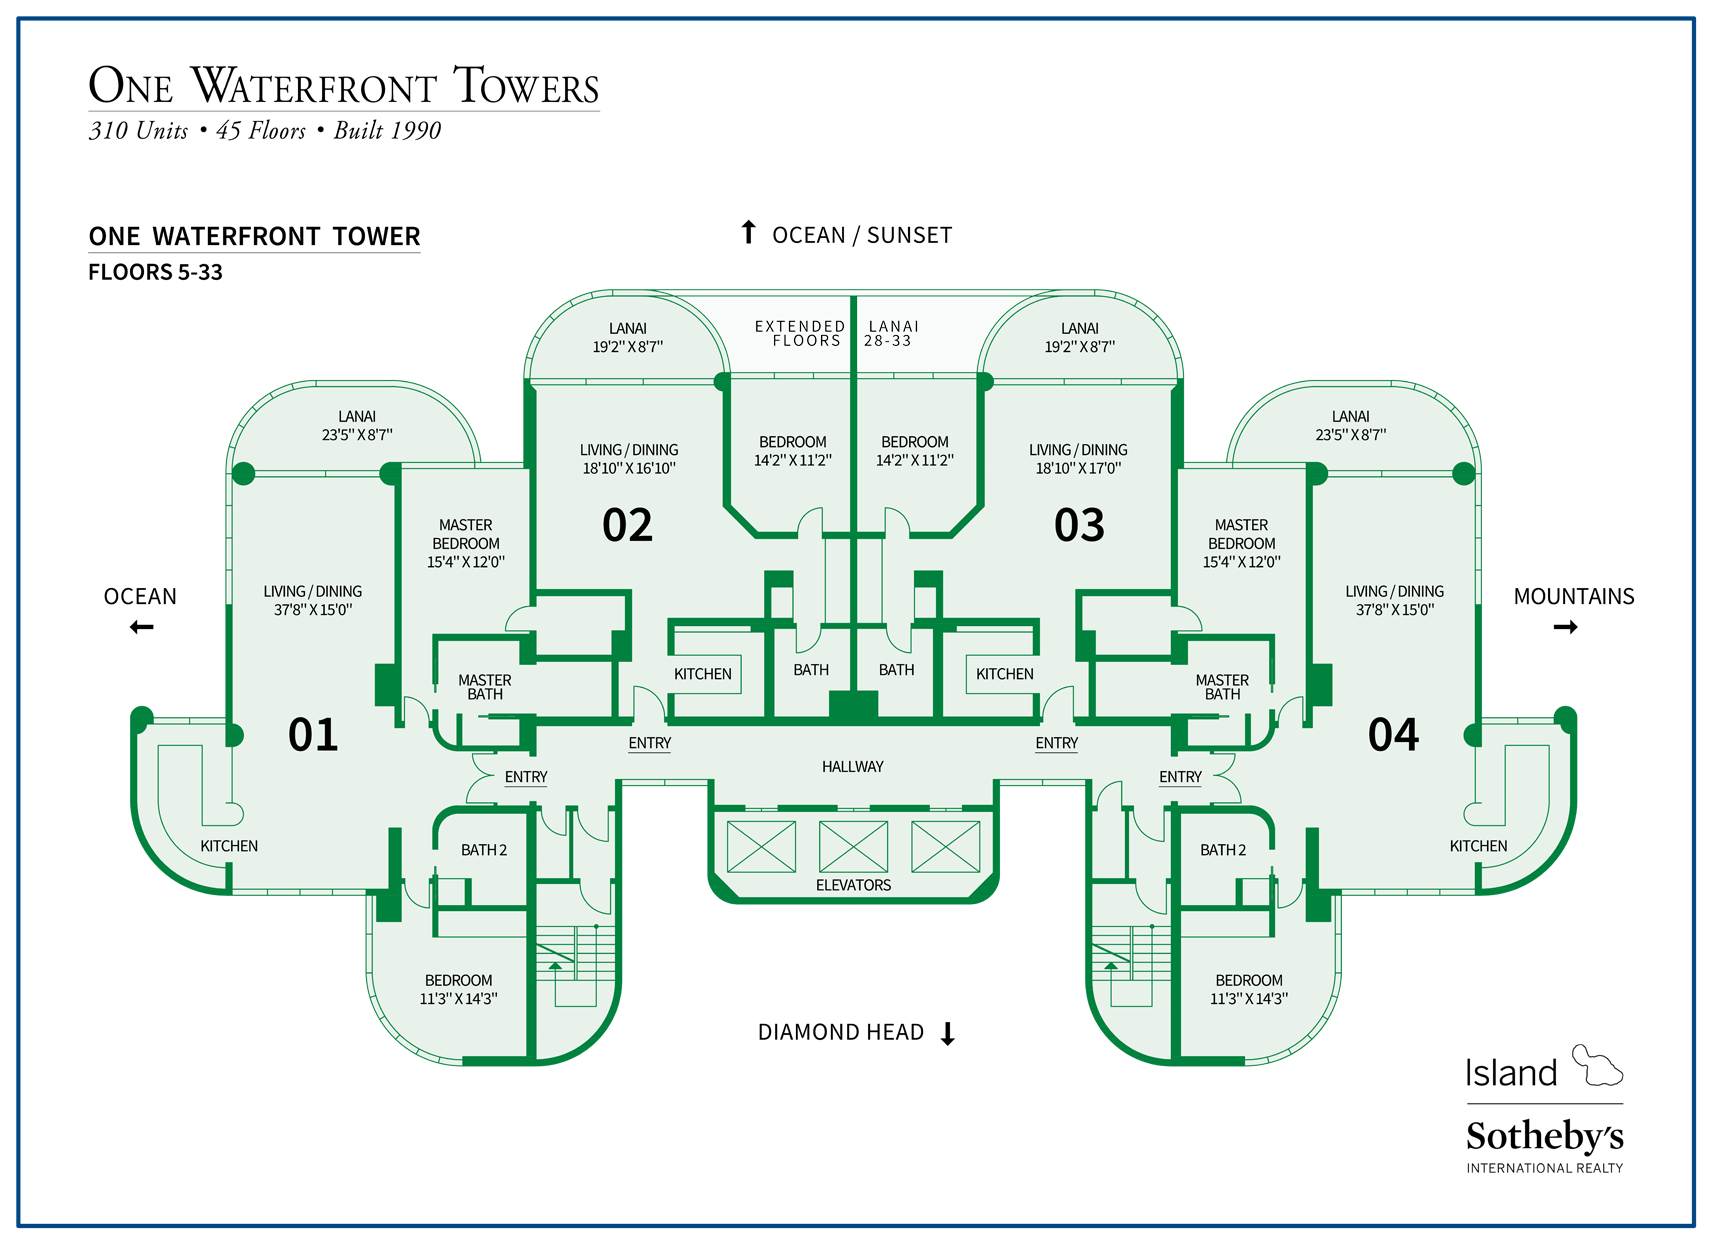 one waterfront towers map